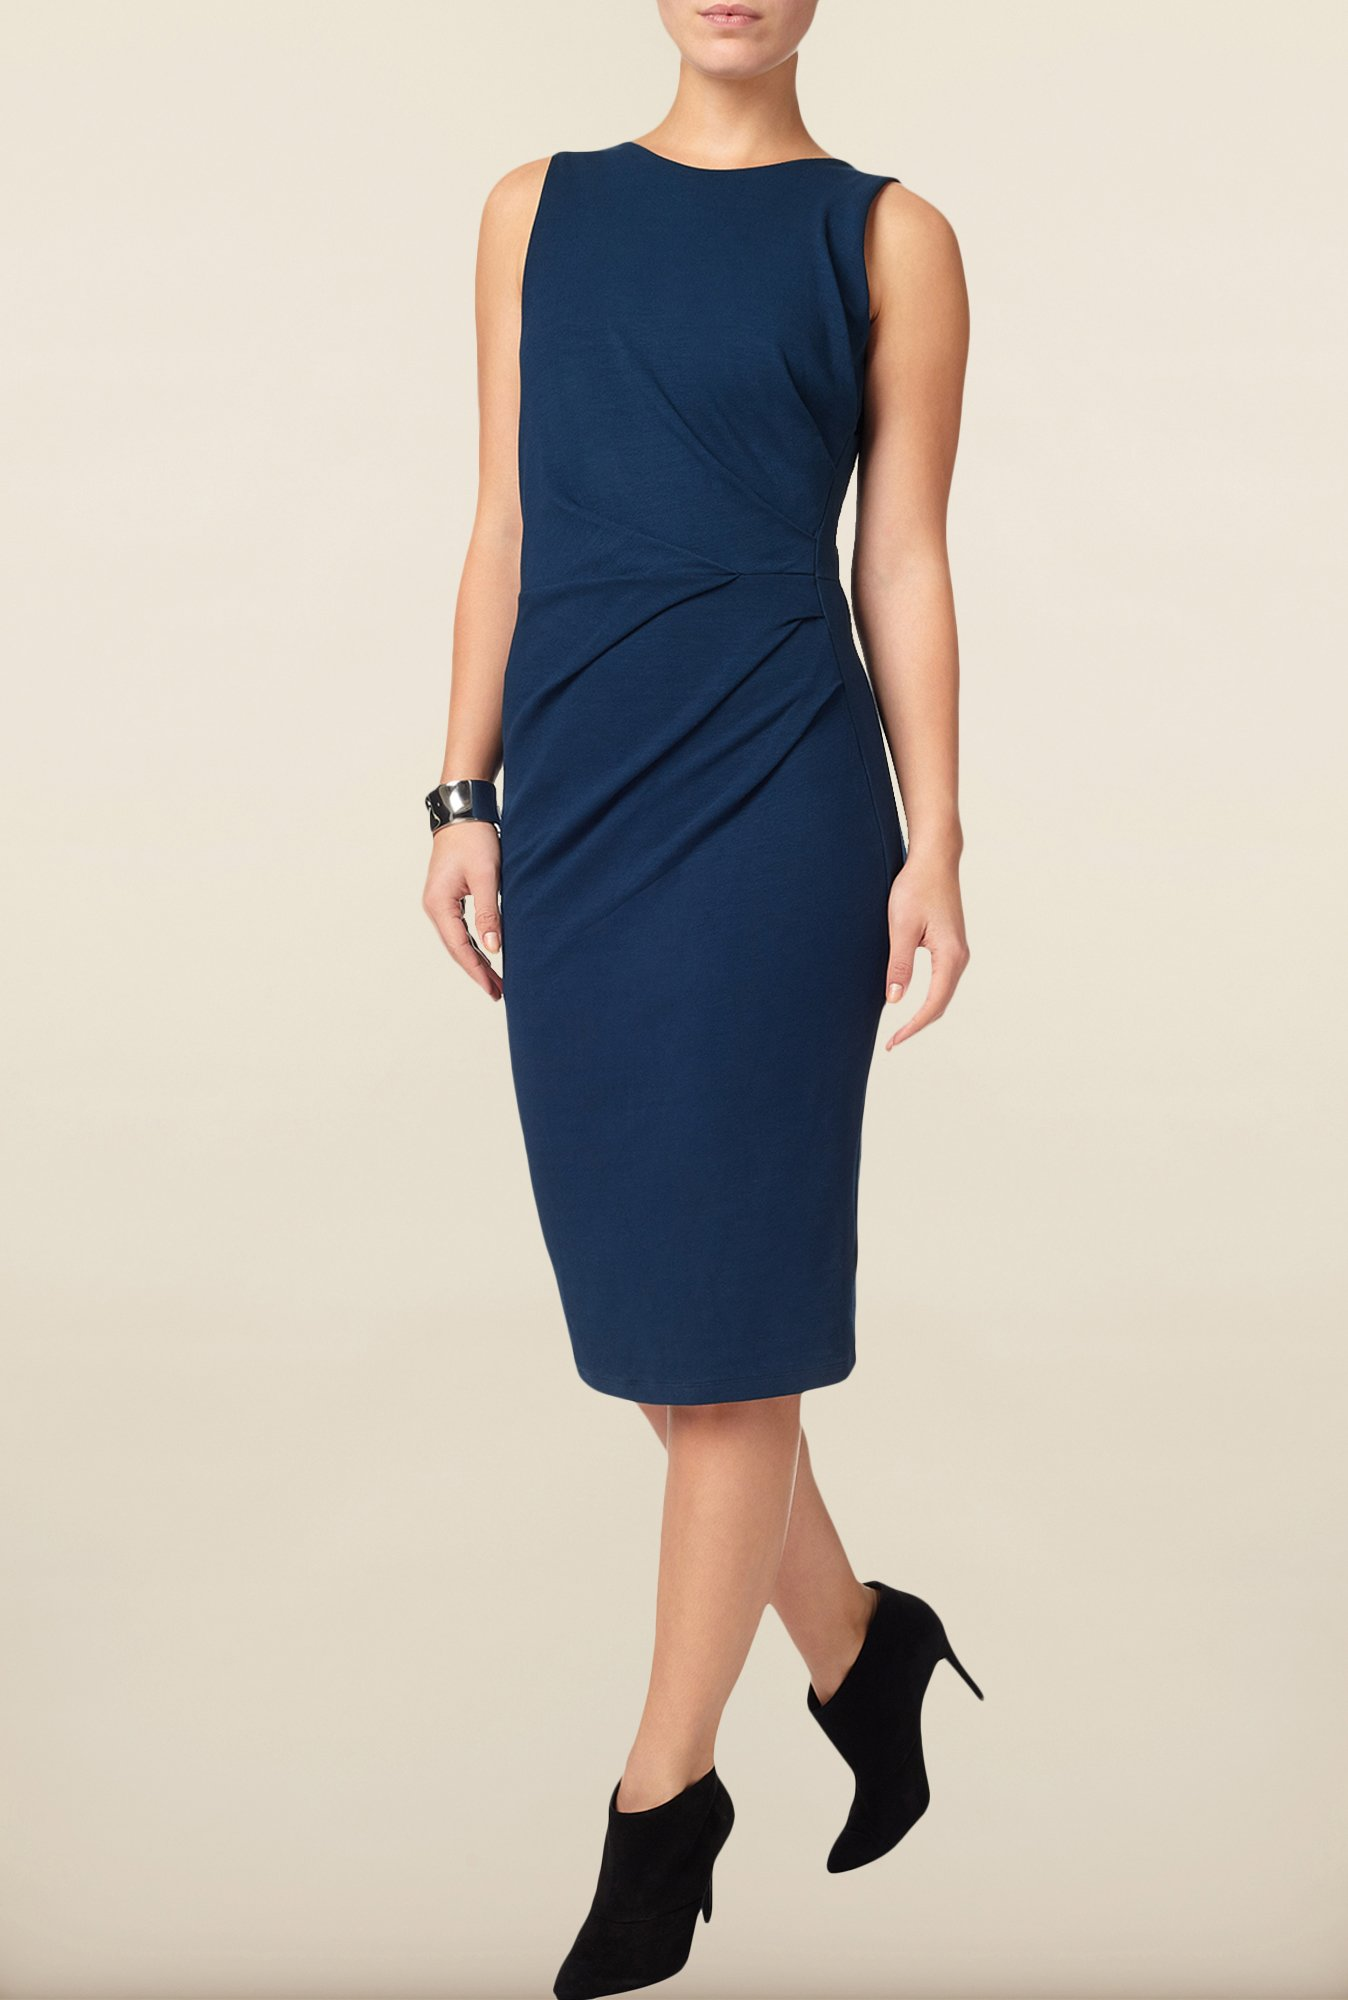 Phase Eight Navy Solid Casual Dress